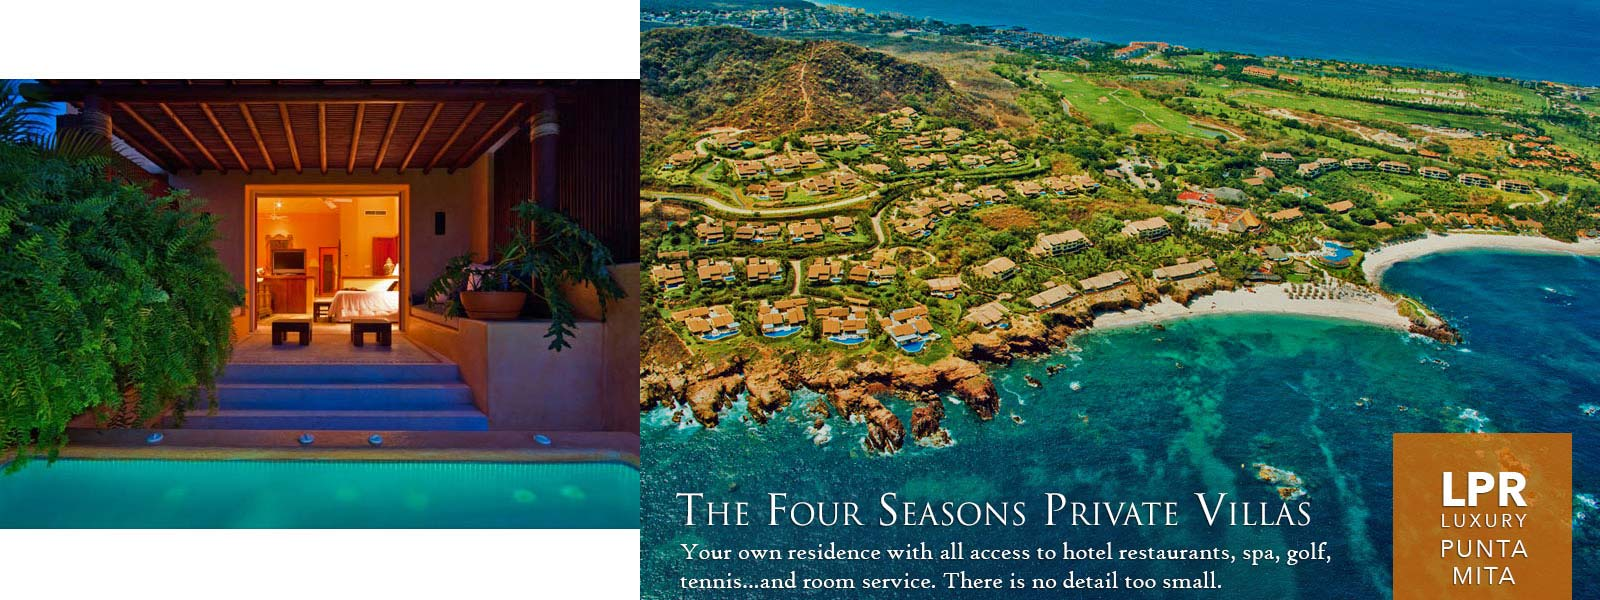 Four Seasons Private Villas - Punta Mita Mexico luxury real estate and vacation rental homes for sale and rent